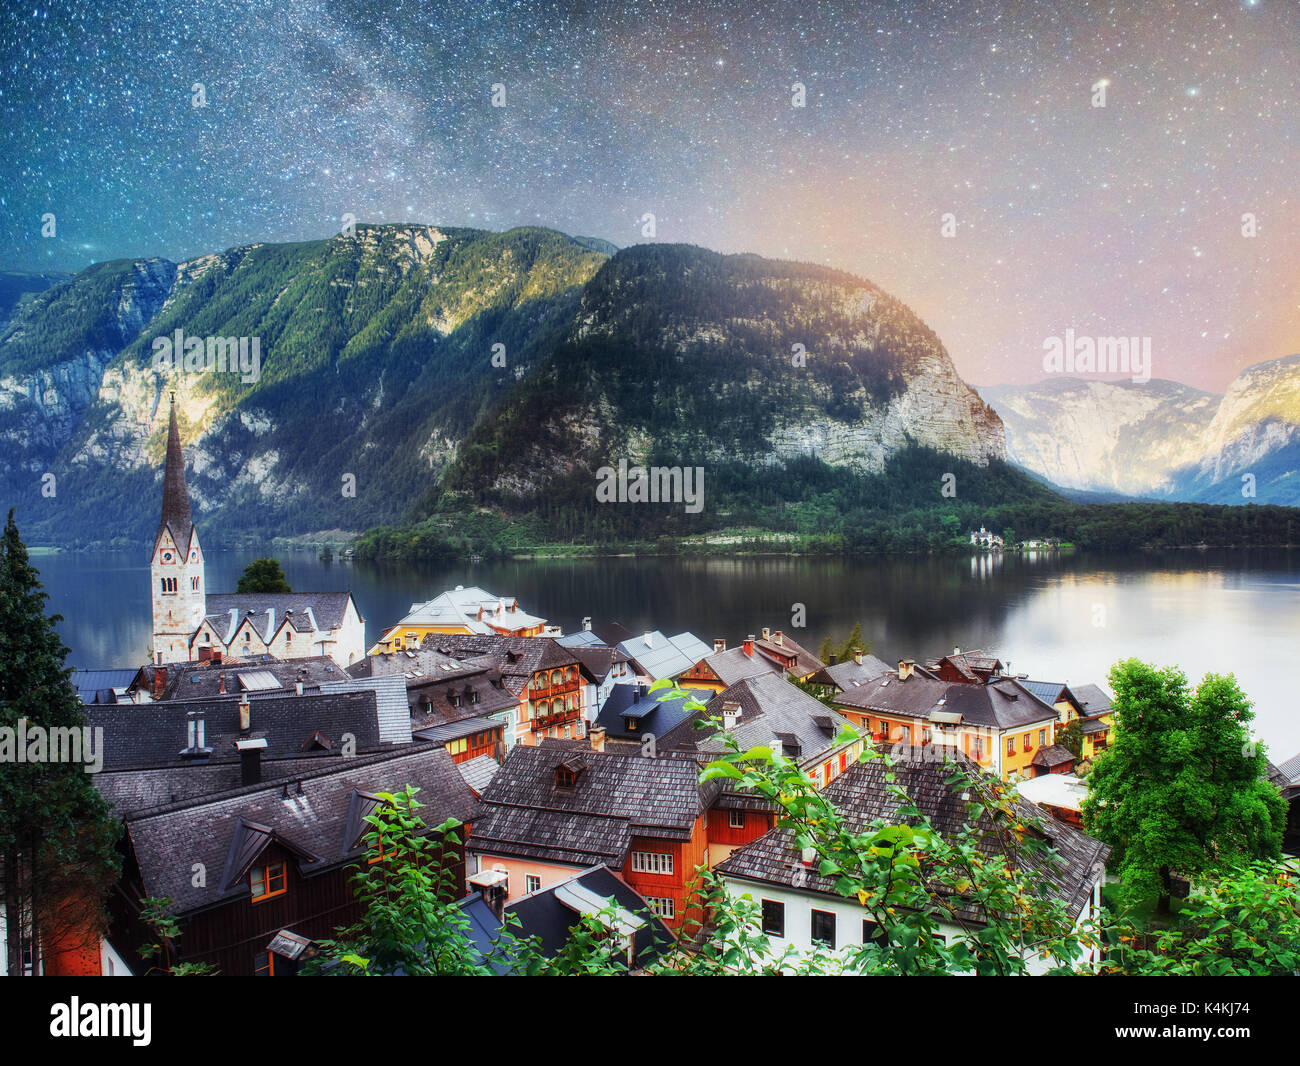 Scenic panoramic view of the famous mountain village in the Austrian Alps. Fantastic milky way. Hallstatt. Austria - Stock Image